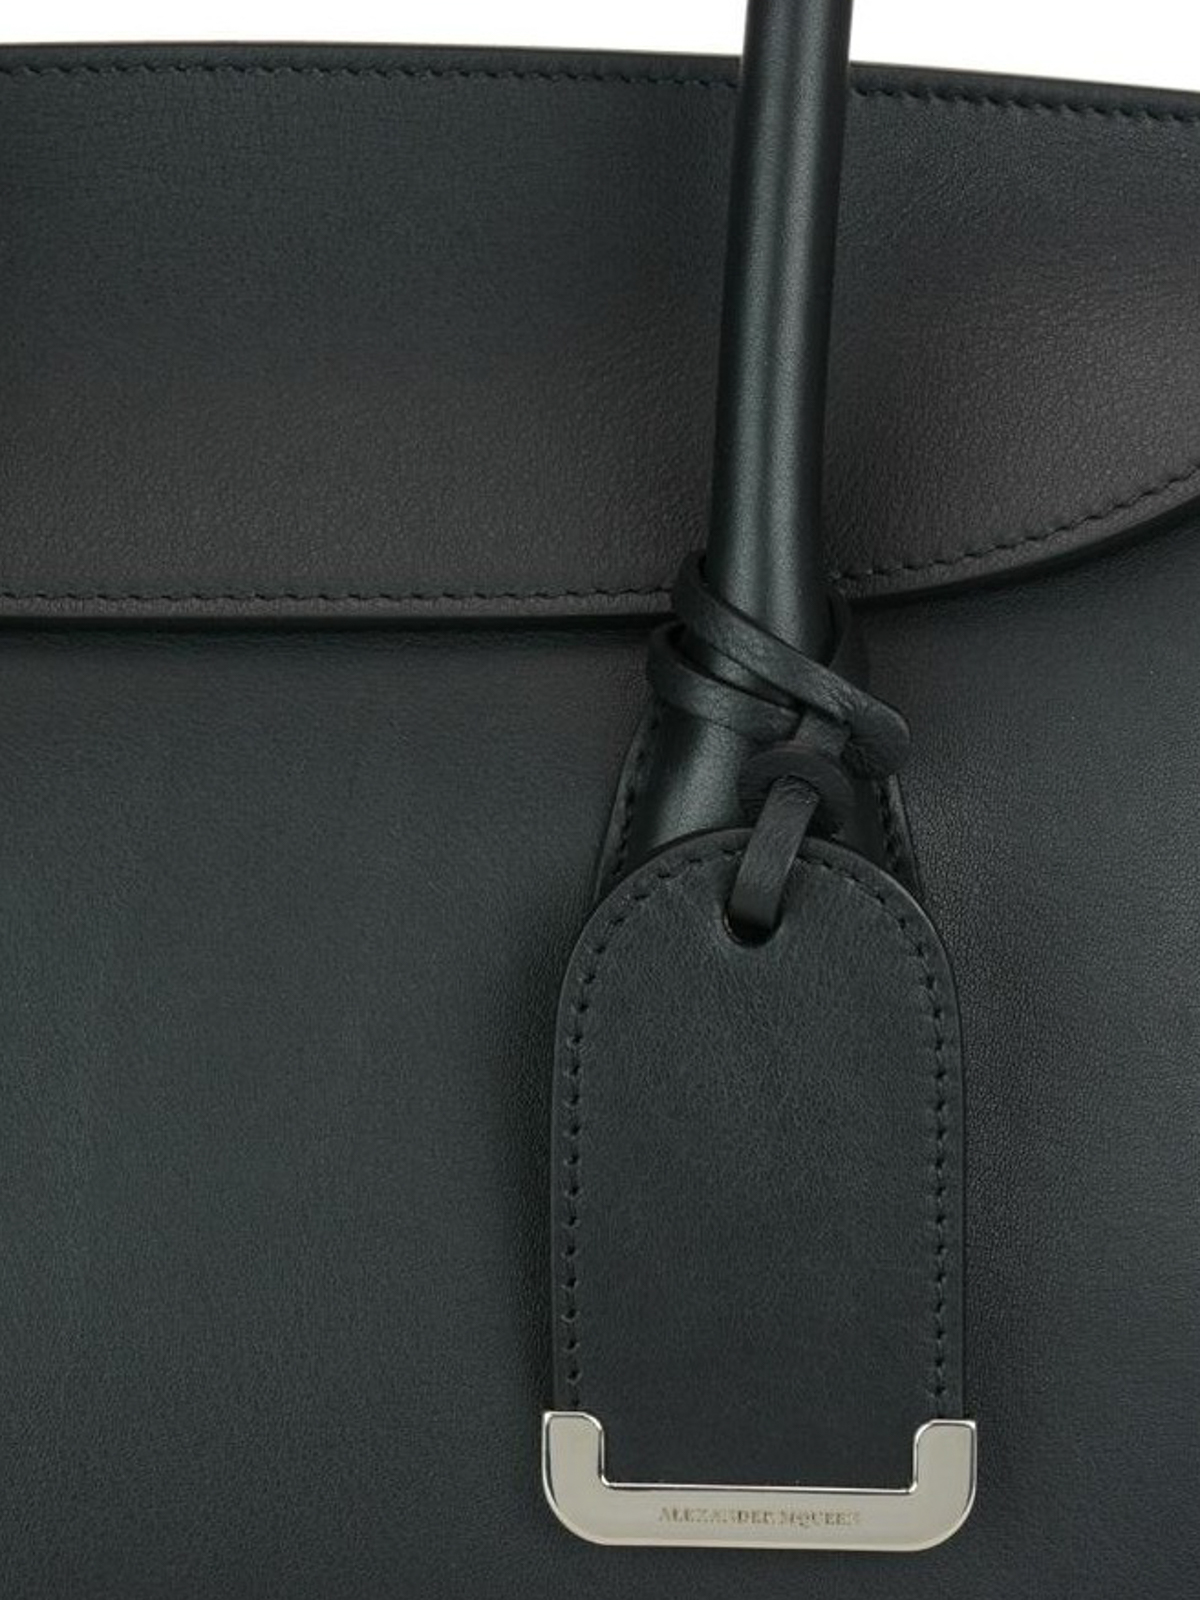 a7e9fa9d62260 Alexander Mcqueen - Heroine 30 black leather tote - totes bags ...